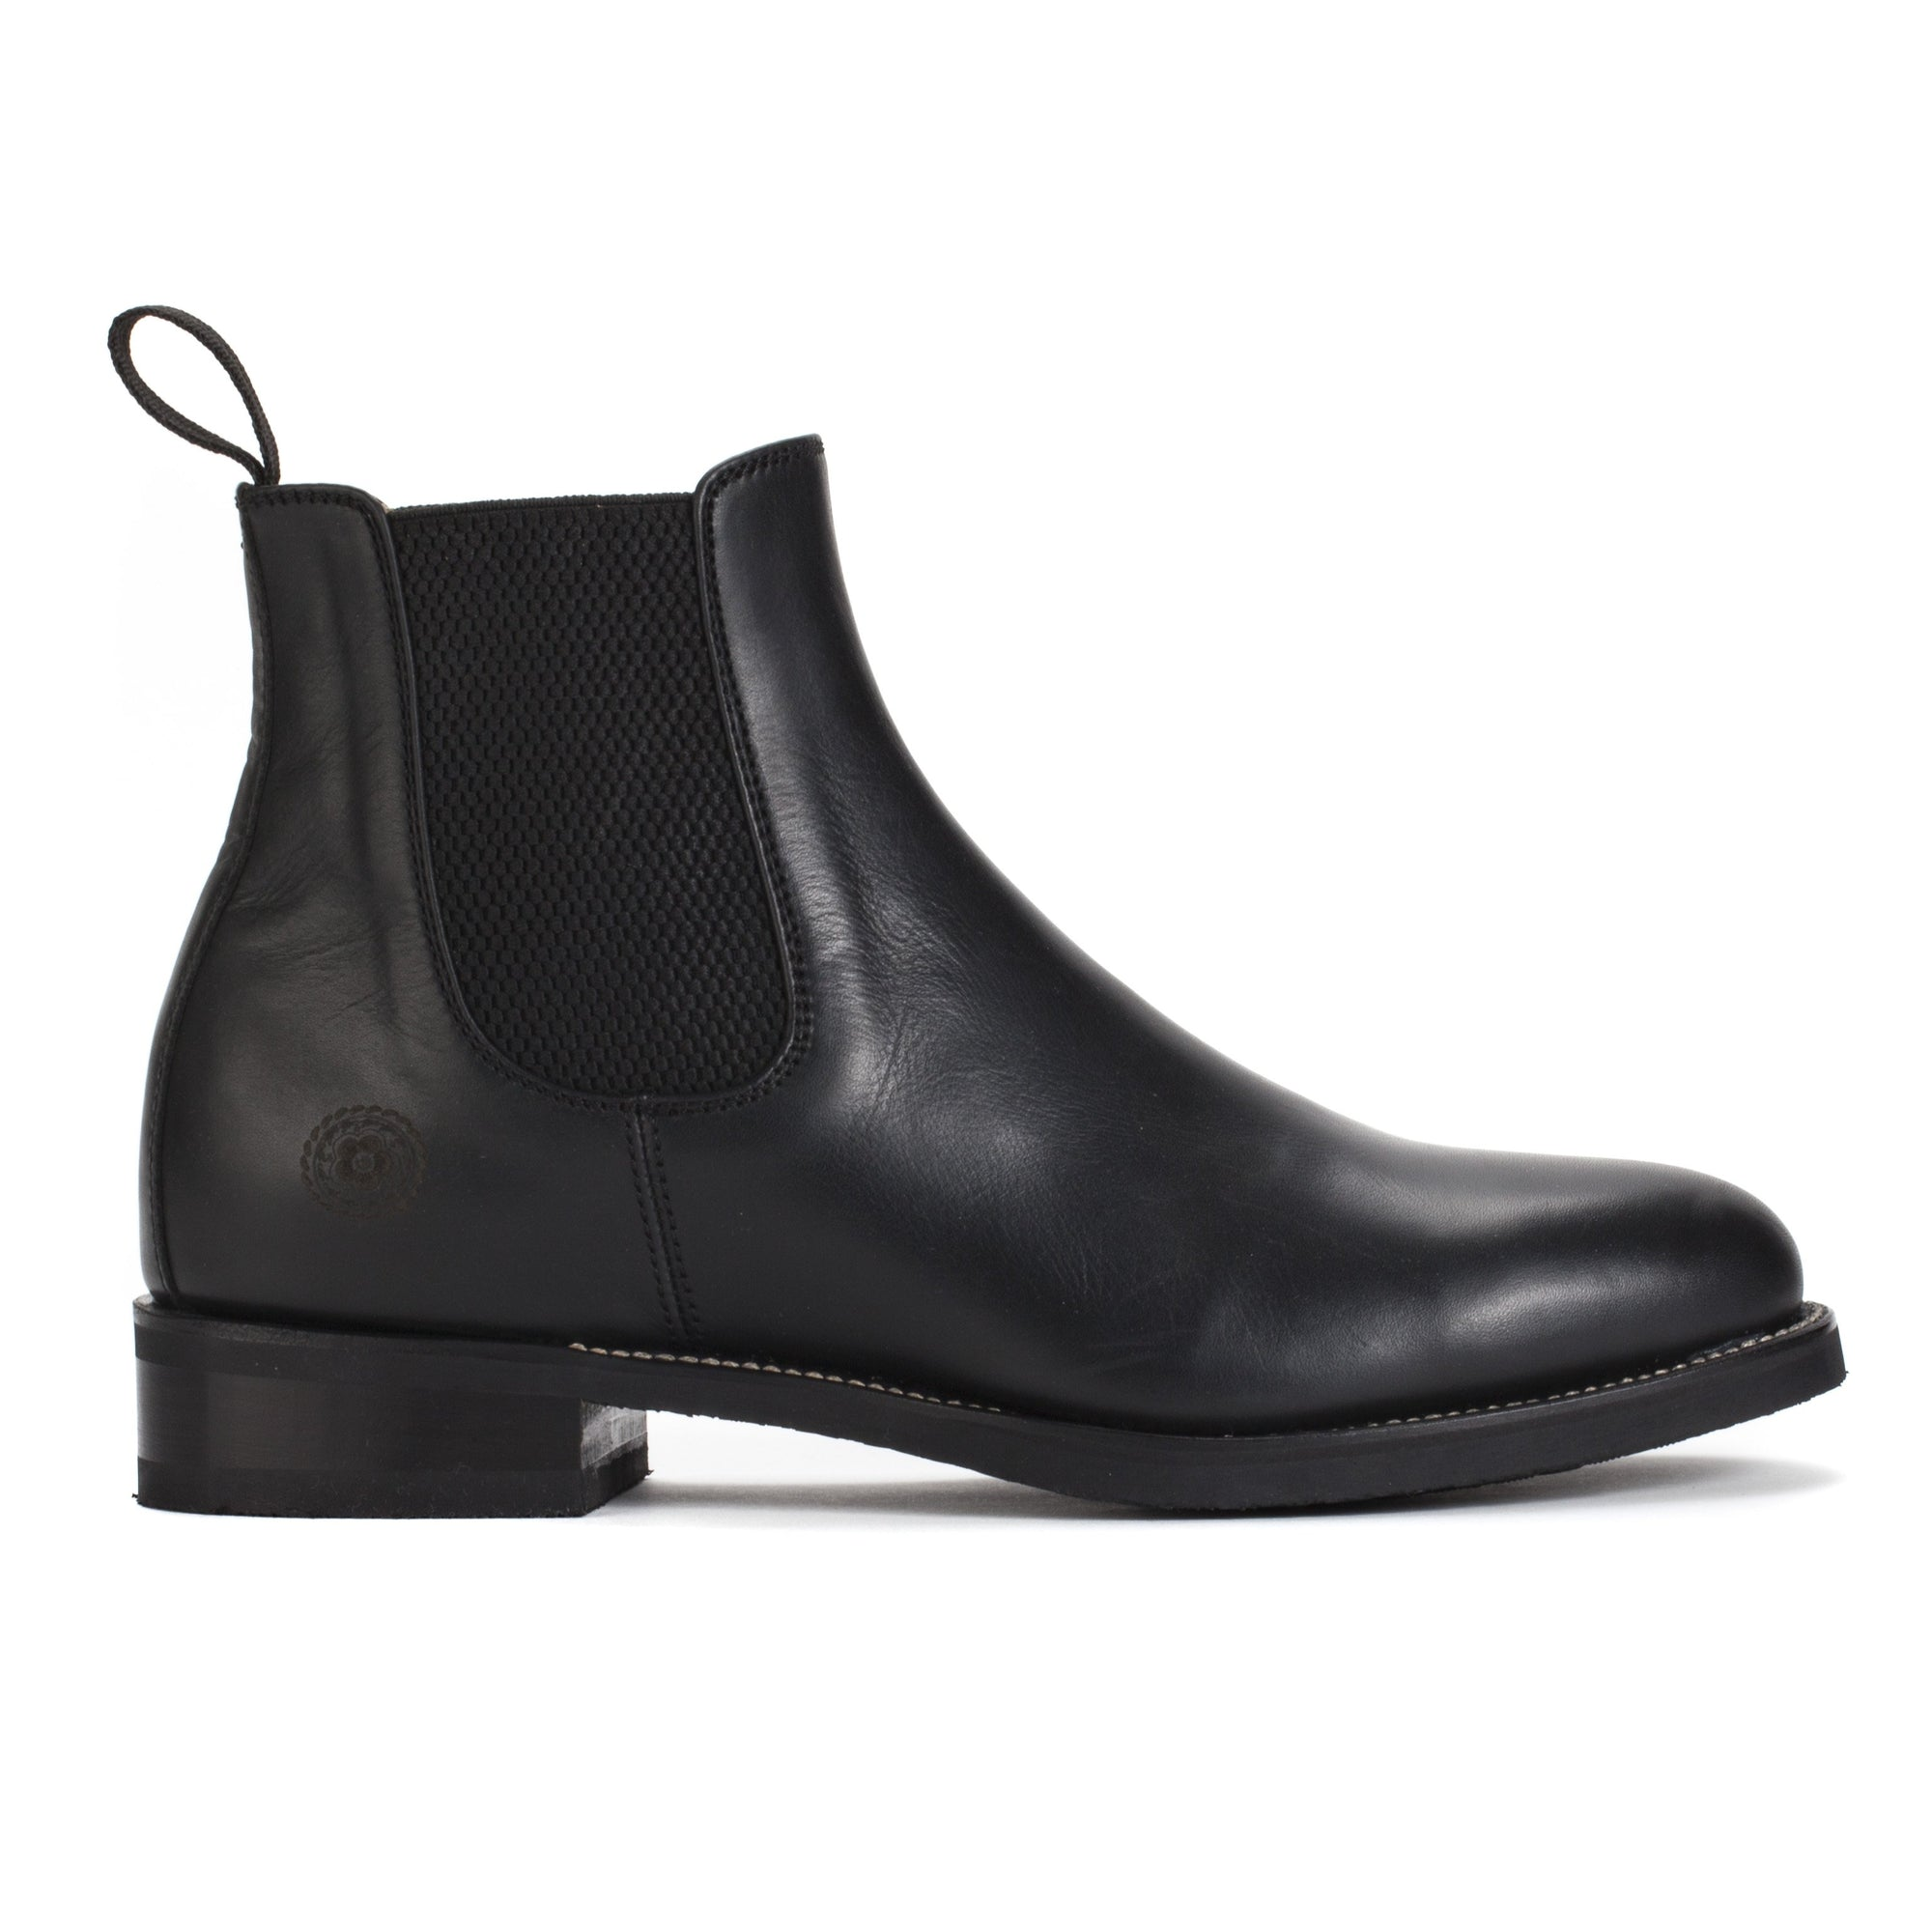 Mens Rambler Black - Versatile Chelsea Boots - Ranch Road Boots™